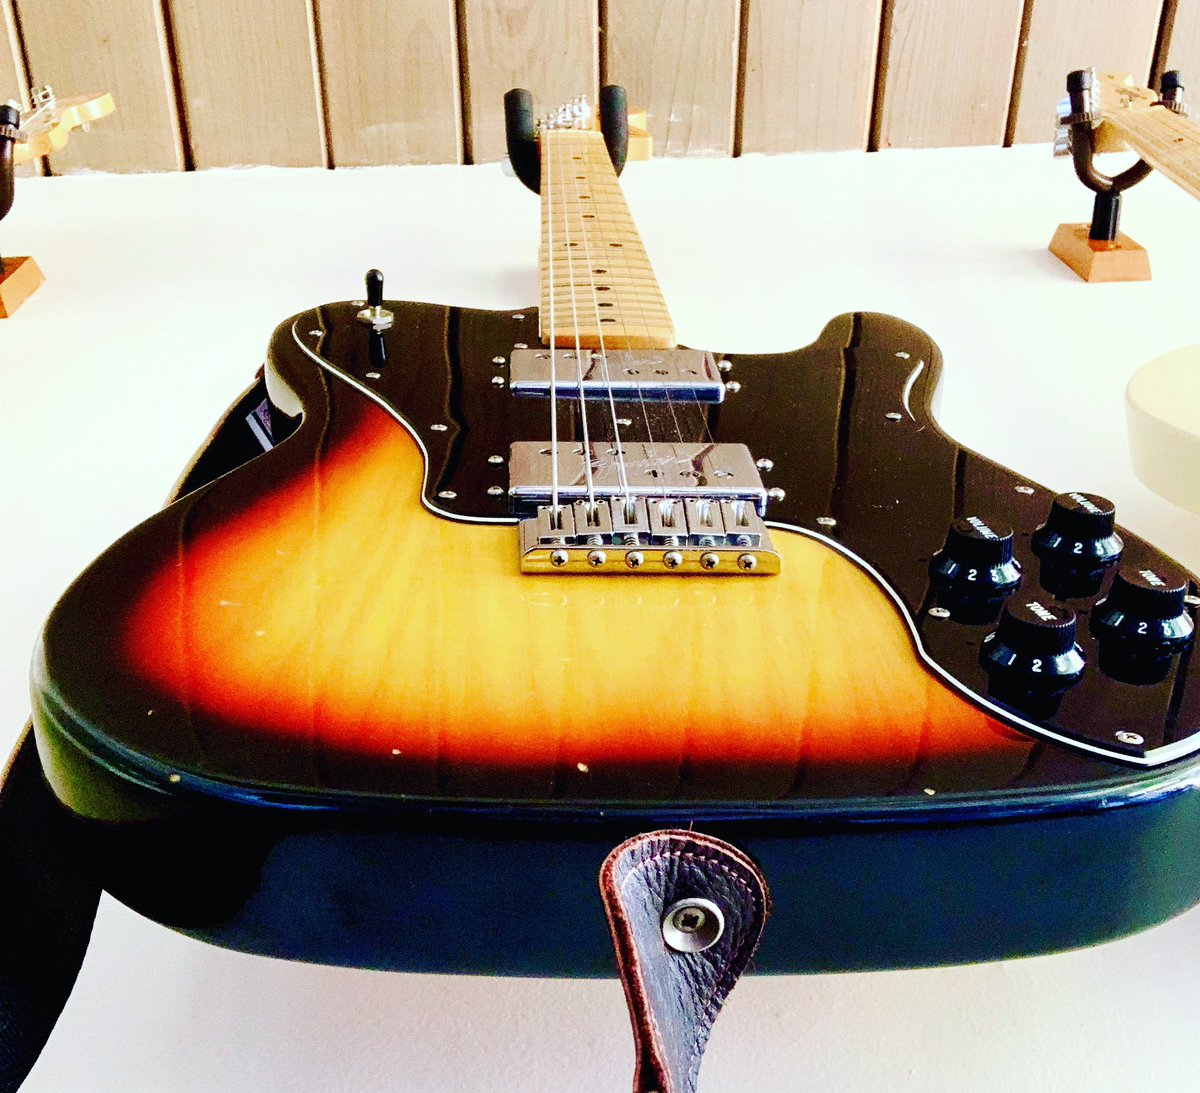 Working on new songs and wanted to share the view from my work table. @fender #fender #fendertelecasterdeluxe #vintageguitars pic.twitter.com/BDOojRHwJW